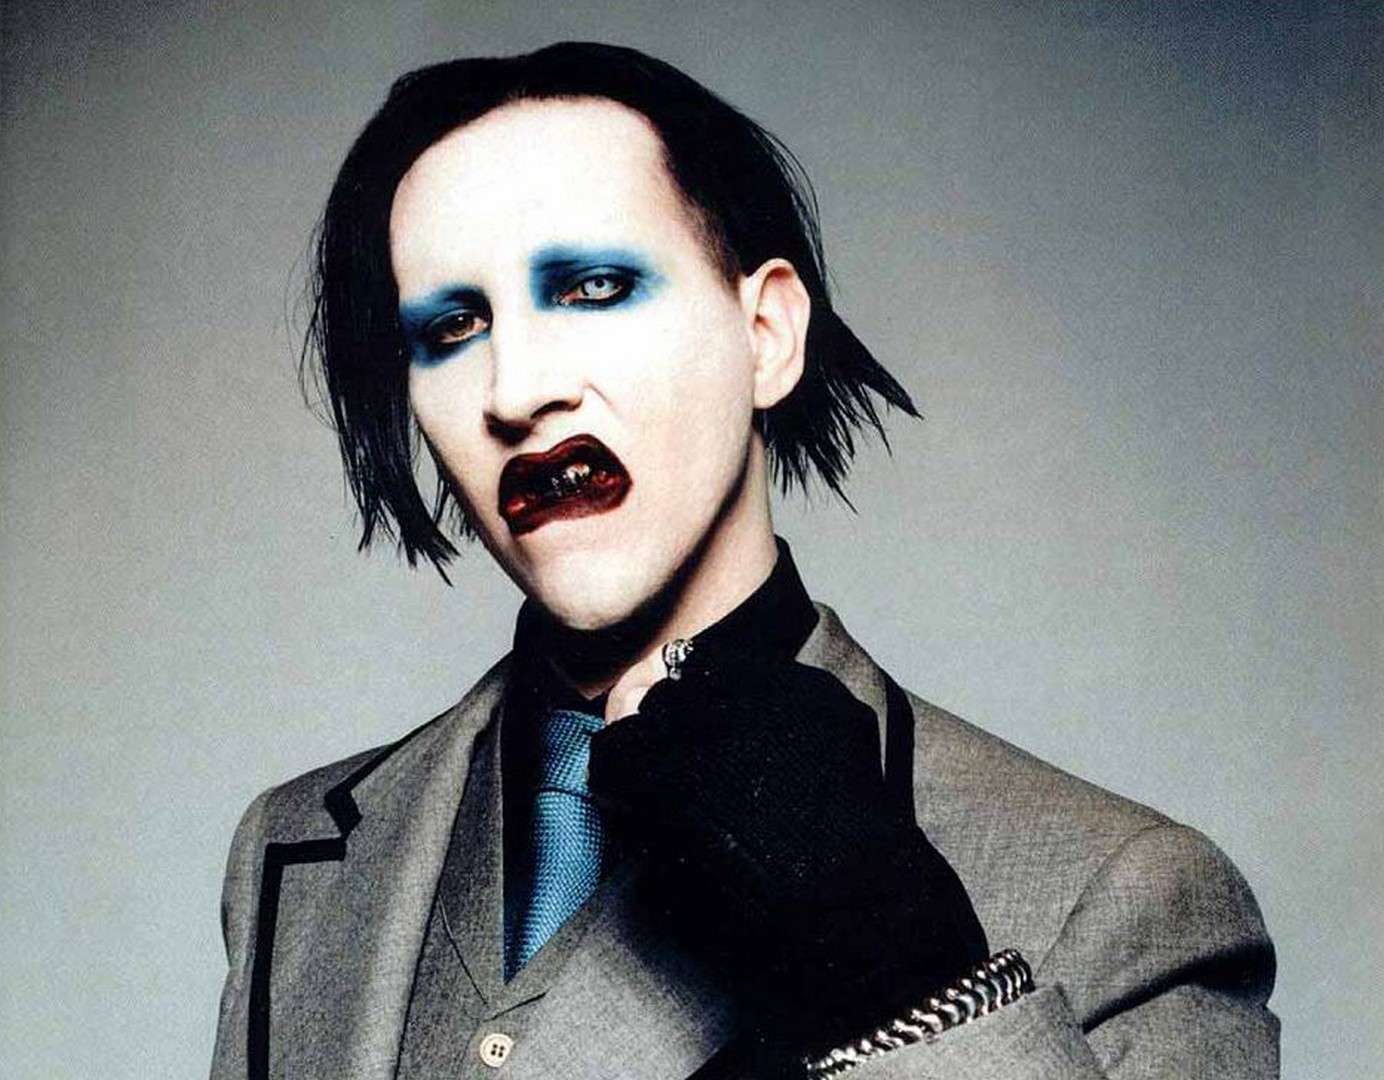 SAY10 é o novo álbum de Marilyn Manson